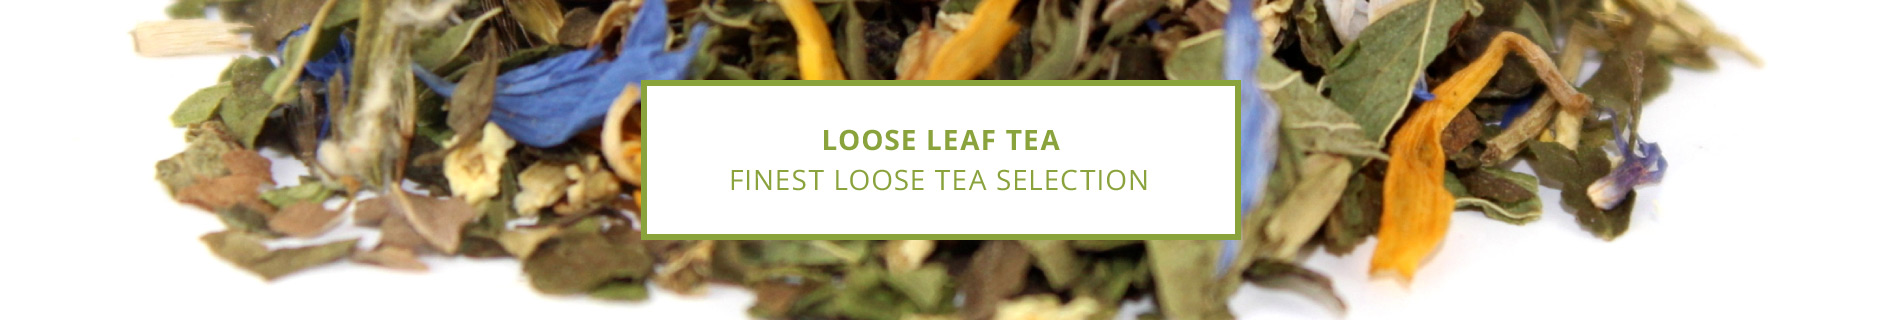 loose-leaf-category.jpg